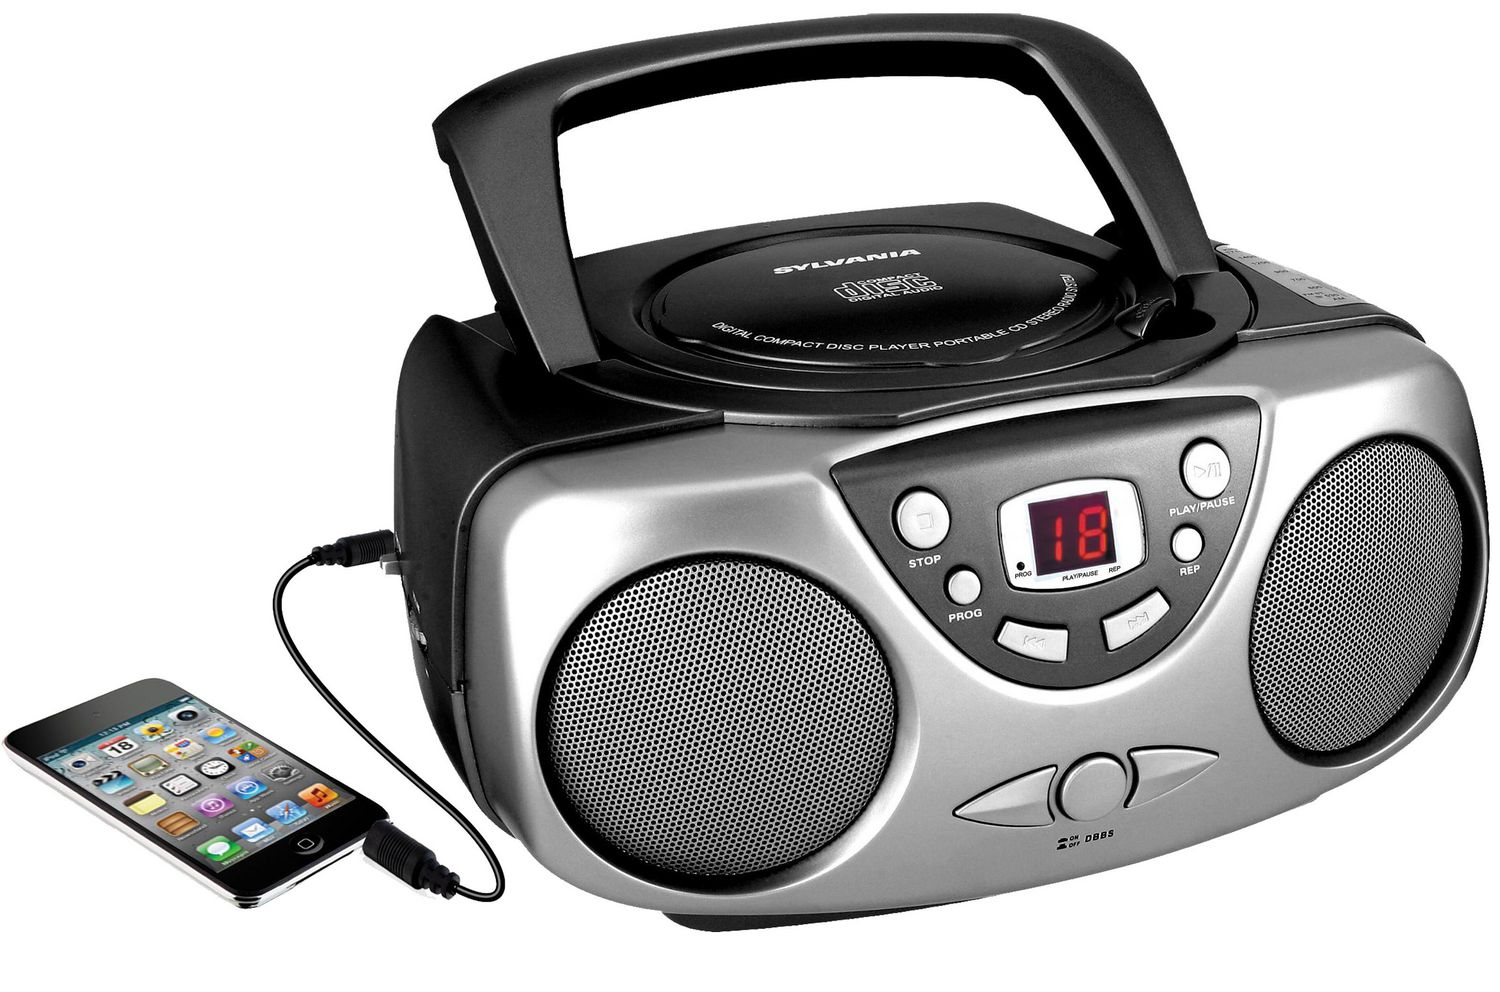 Sylvania Portable CD Player with AM/FM Radio | Walmart Canada